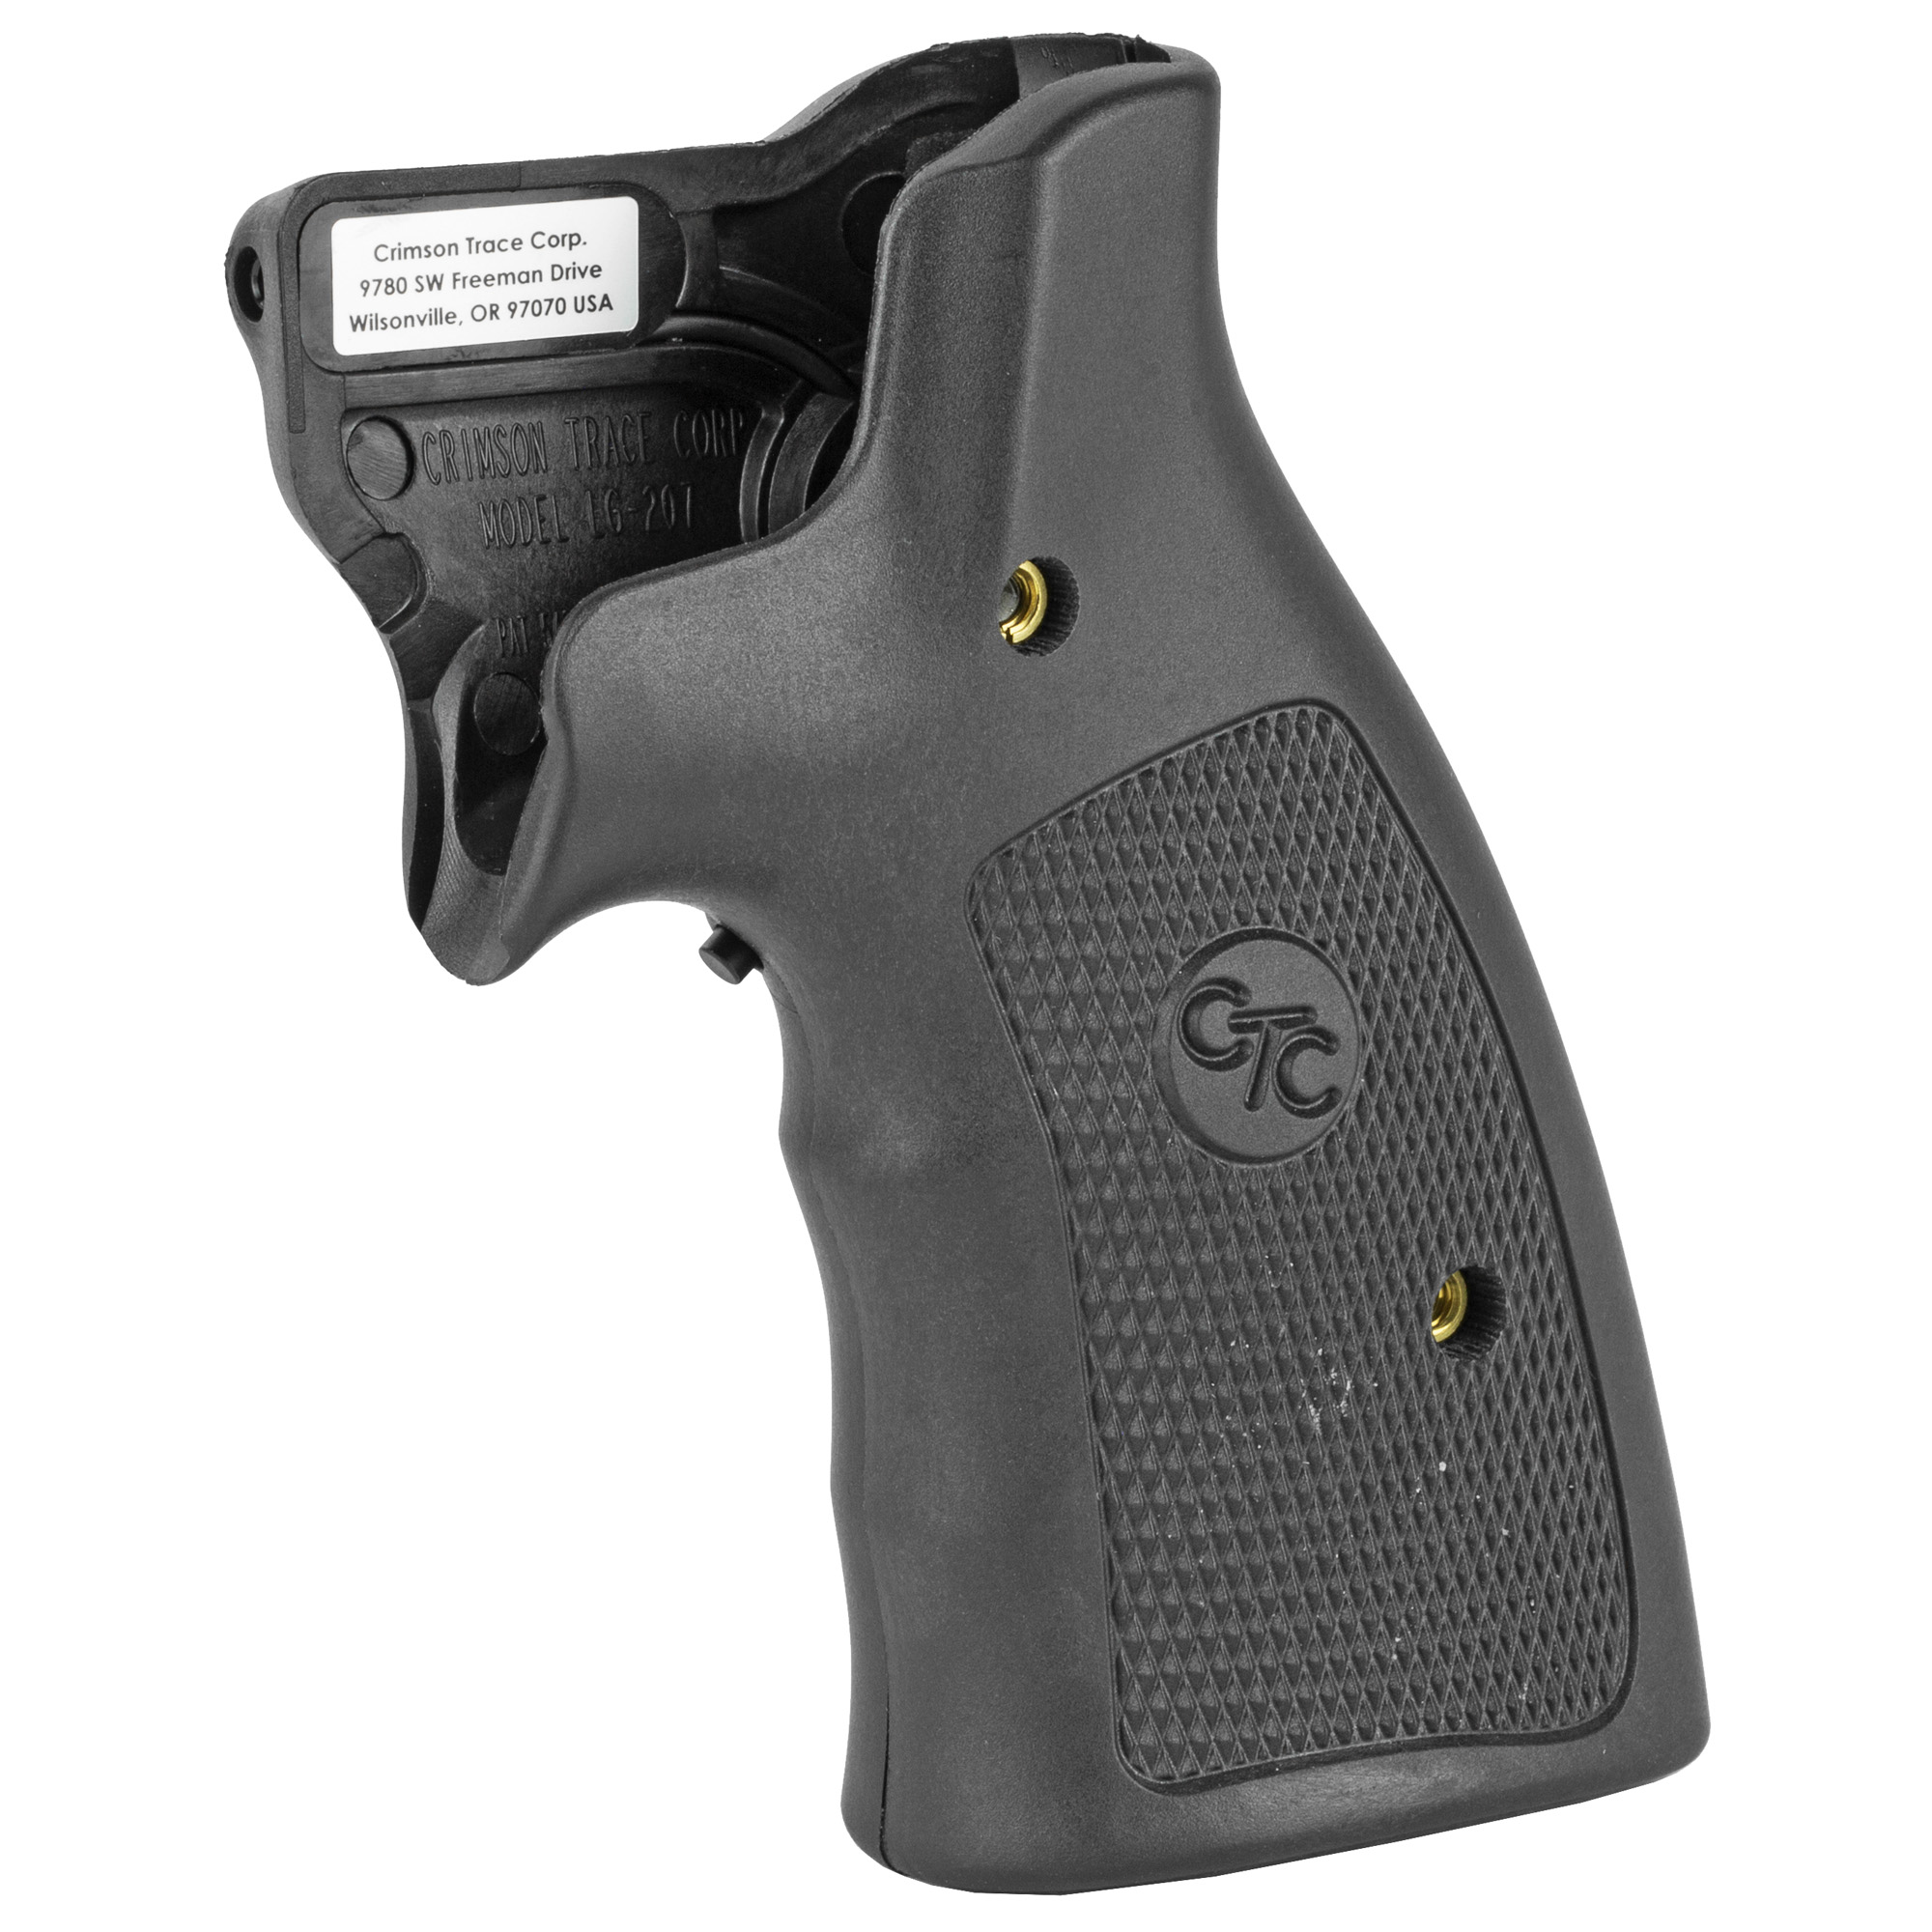 """LG-207 laser sights for Smith & Wesson K"""" L & N-Frame revolvers feature a hard polymer material that provides ideal grip security for large caliber revolvers. The laser activation switch is located in front"""" making activation """"instinctive"""" when you assume a normal firing grip on the revolver."""